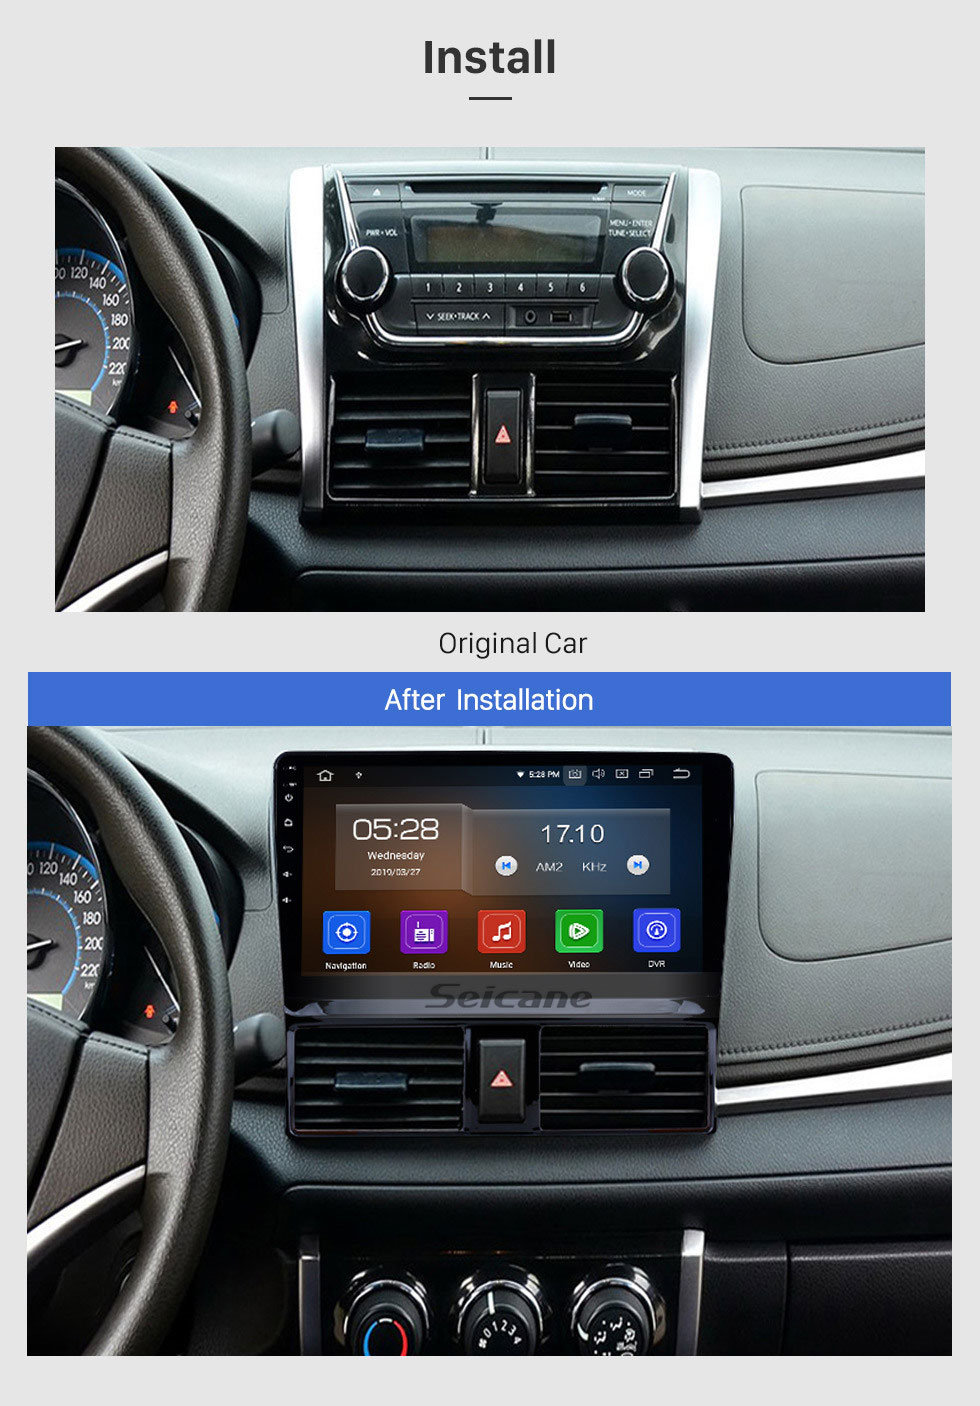 Seicane 10.1 inch Android 9.0 2013 2014 2015 2016 Toyota Vios GPS Radio with 1024*600 Touchscreen Bluetooth Music 4G WiFi Backup Camera Mirror Link OBD2 Steering Wheel Control